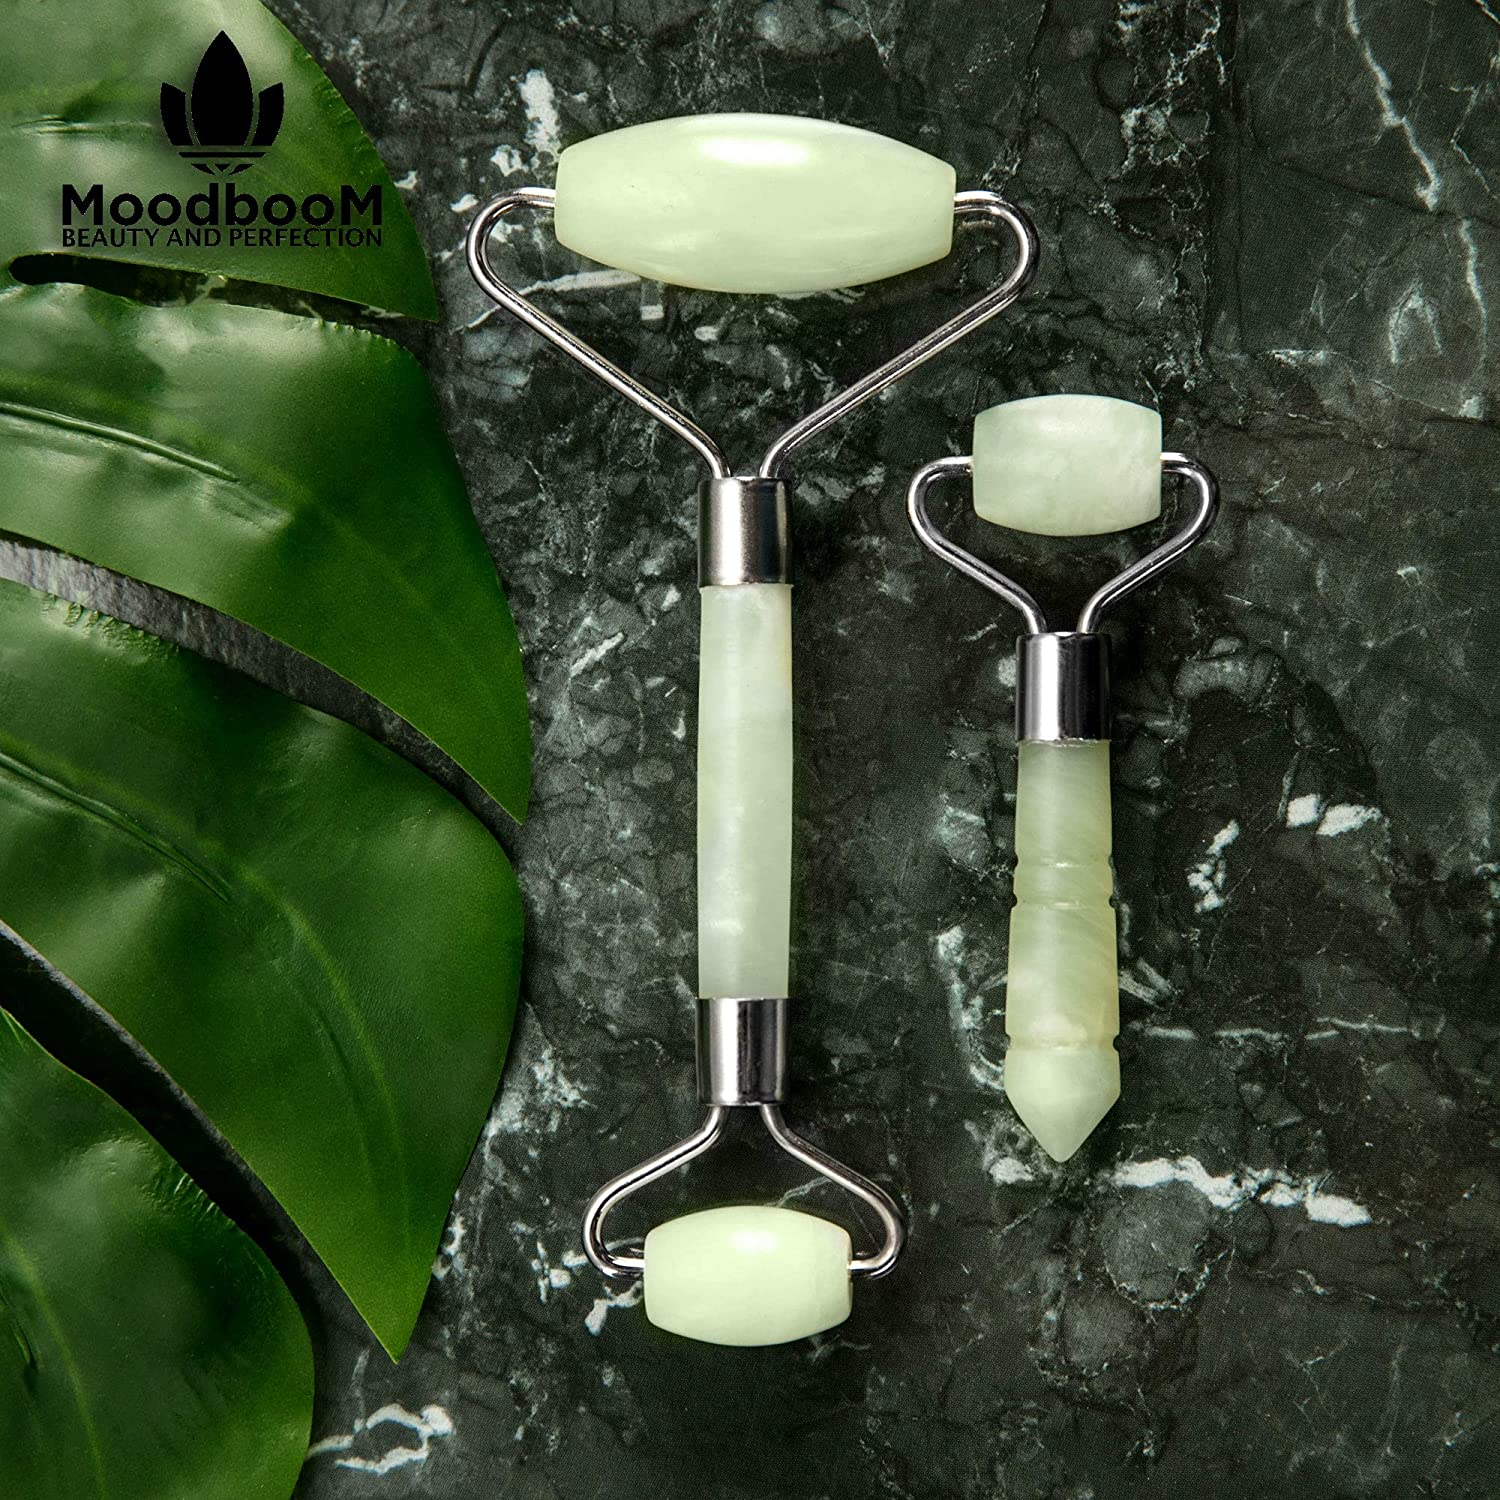 Amazon.com : Best Jade Roller for Face Eyes and Neck - Premium Set of 2 Double End Jade Facial Roller and Bonus Eye Massager Made of Natural Jade Stones ...